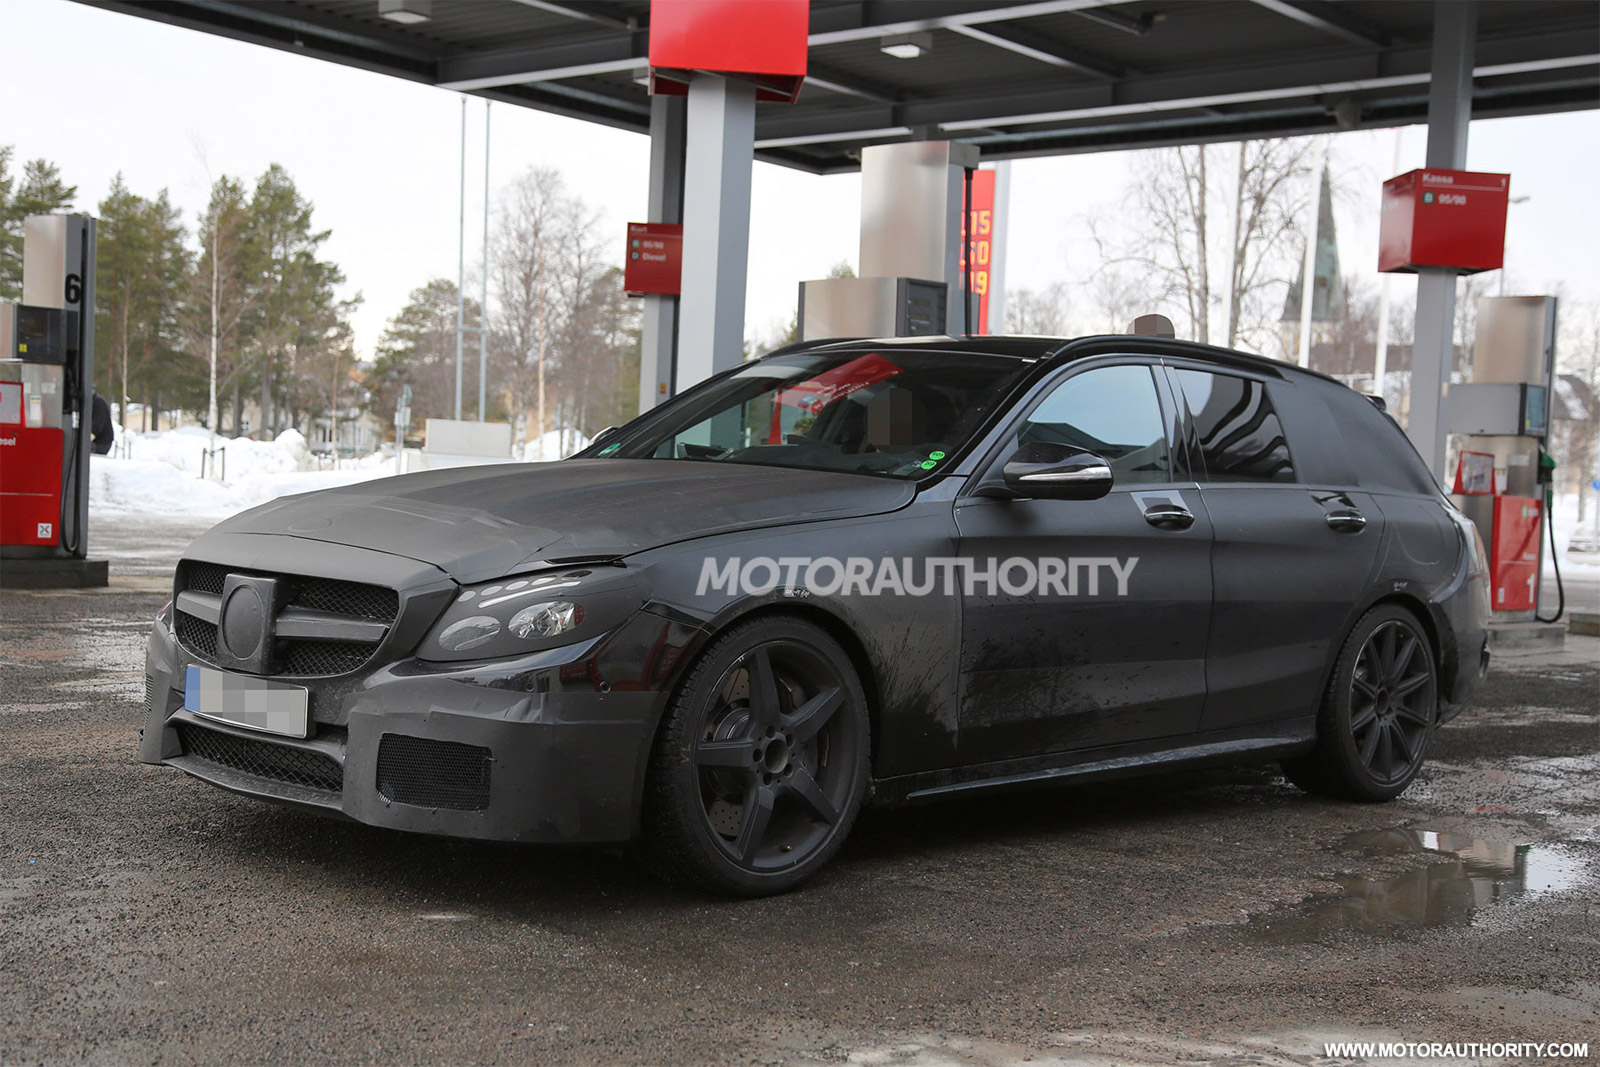 2015 mercedes benz c63 amg wagon spy shots for Mercedes benz c63 amg wagon